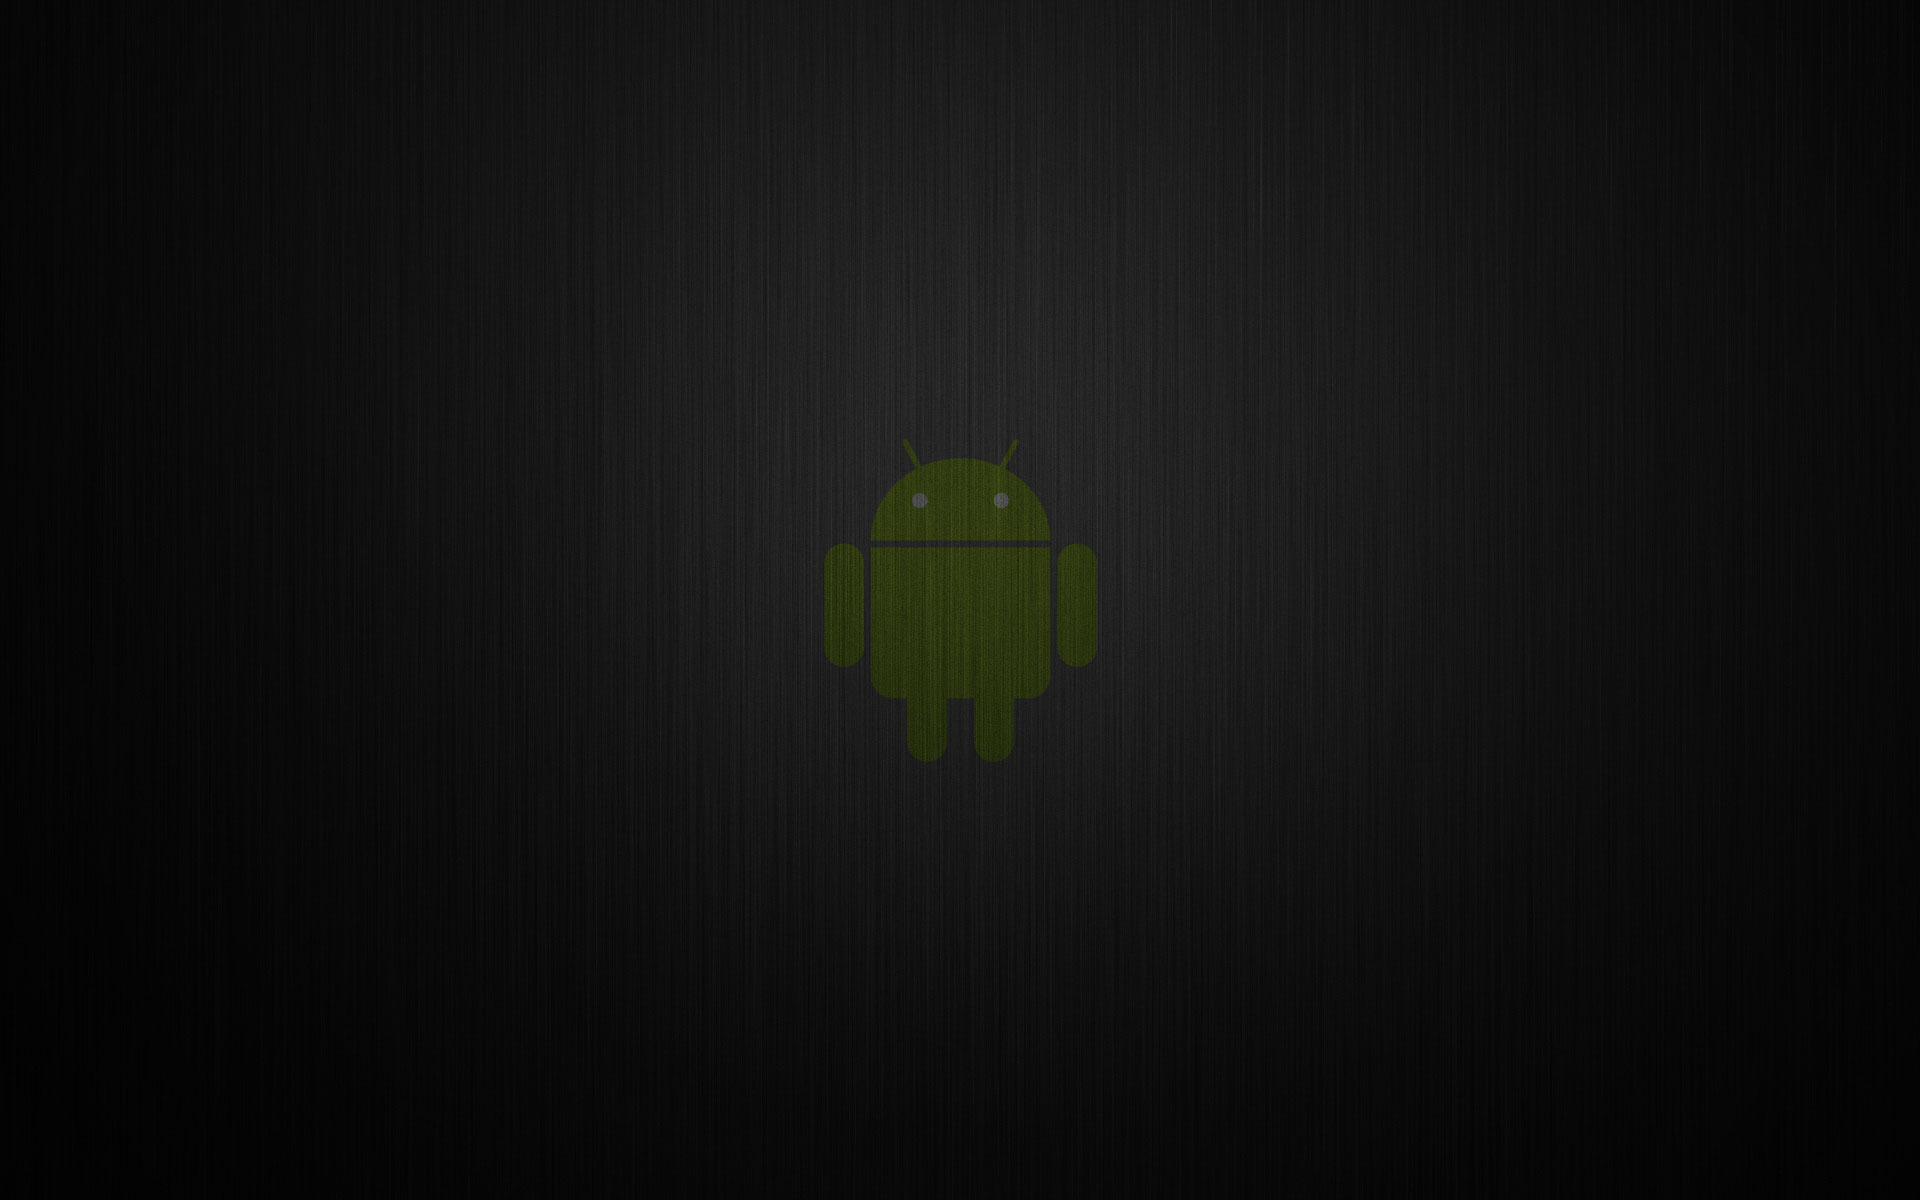 metallic blues wallpaper cool images black android 1920x1200